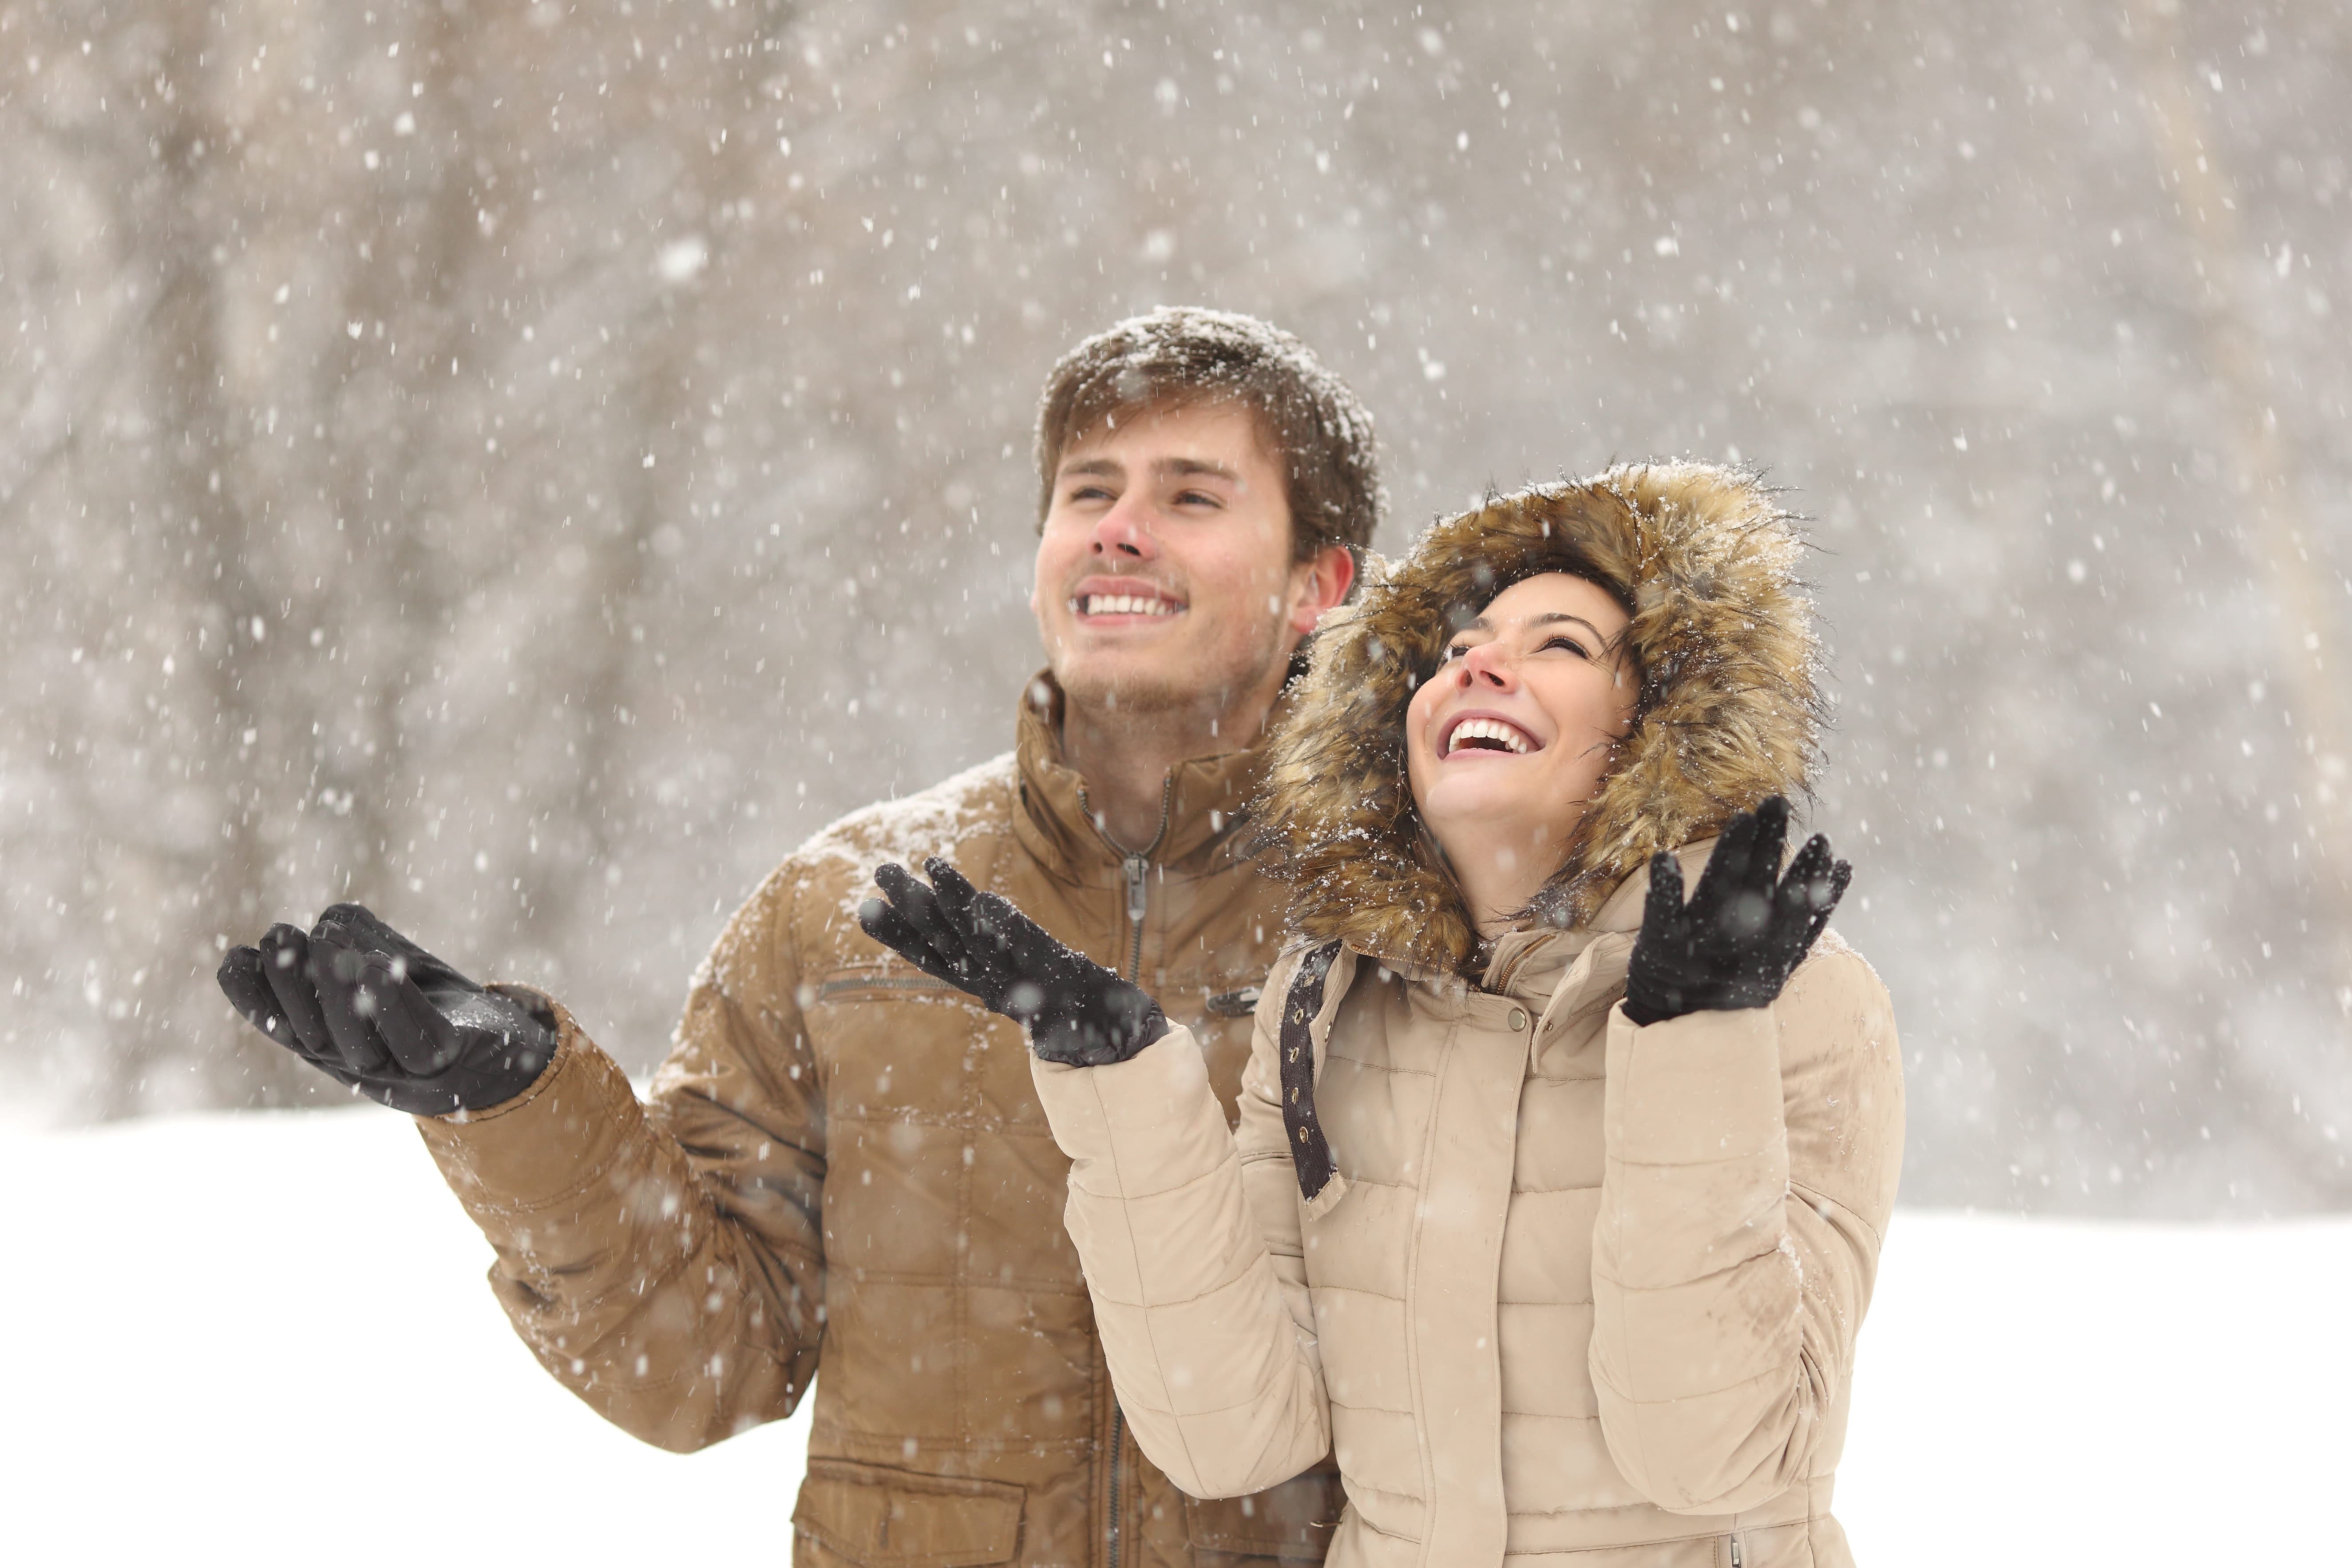 How to stay well during winter